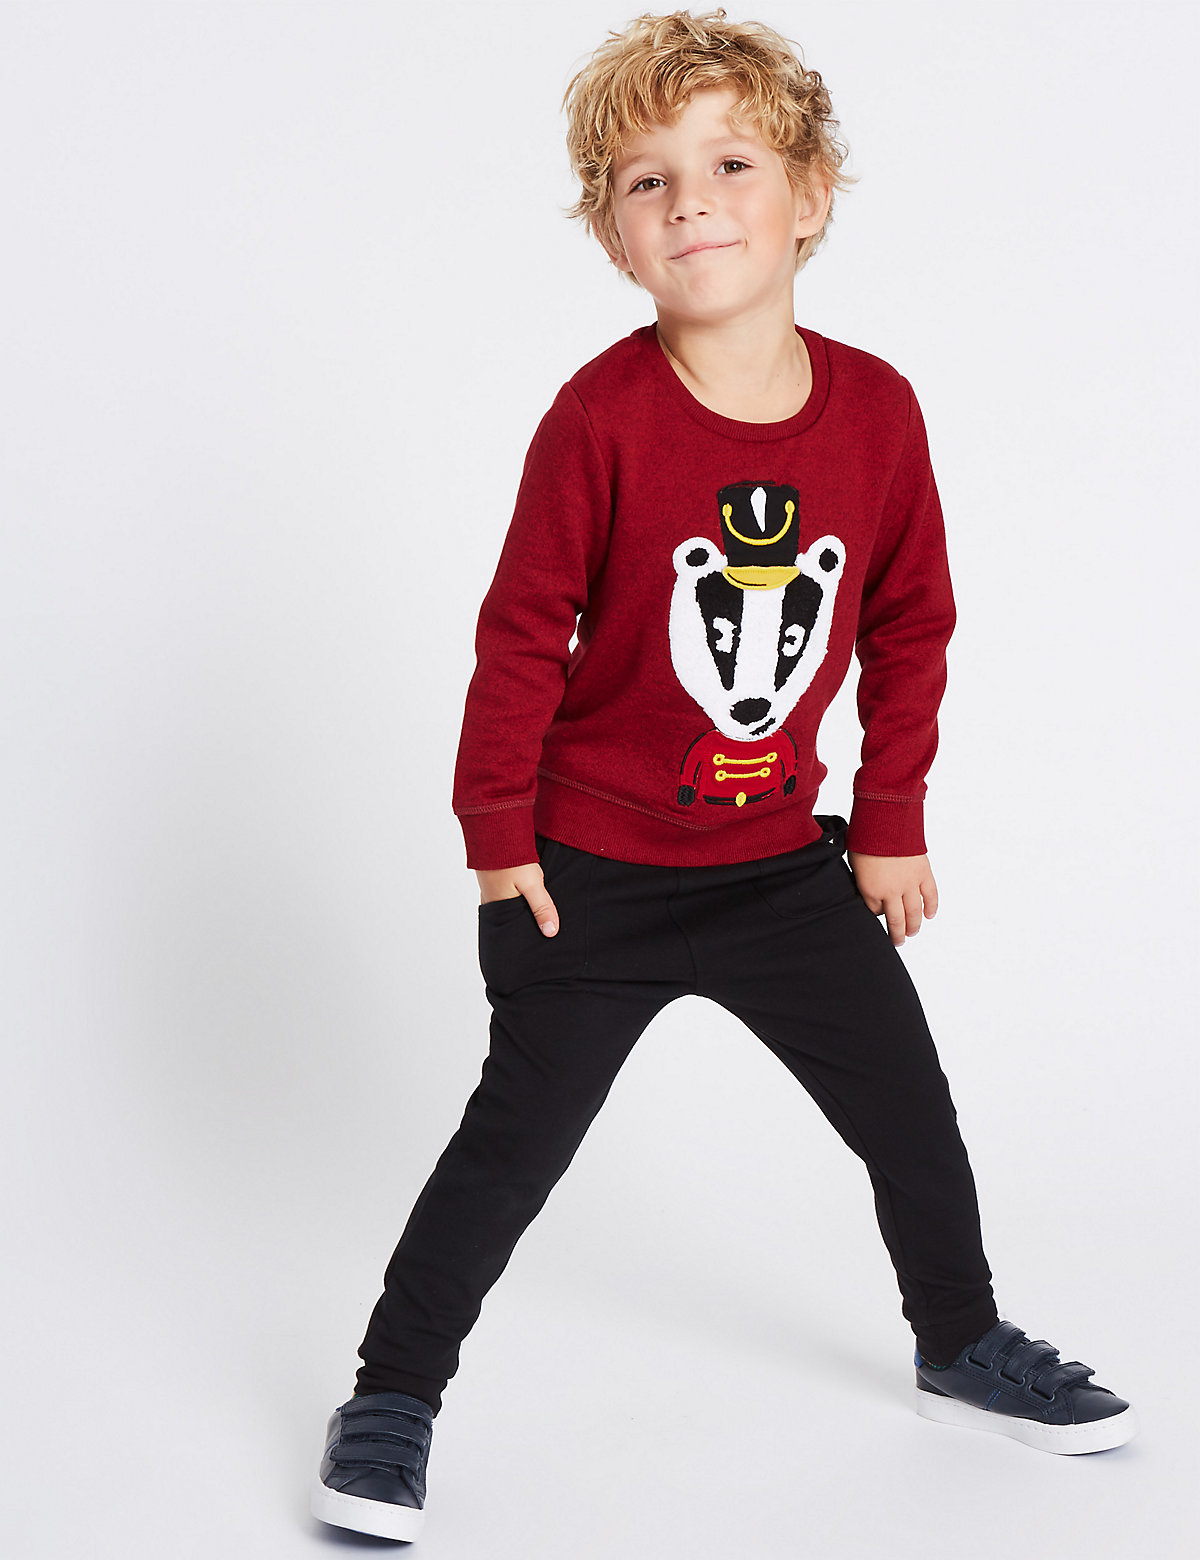 2 Piece Badger Sweatshirt & Joggers Outfit (3 Months - 6 Years)